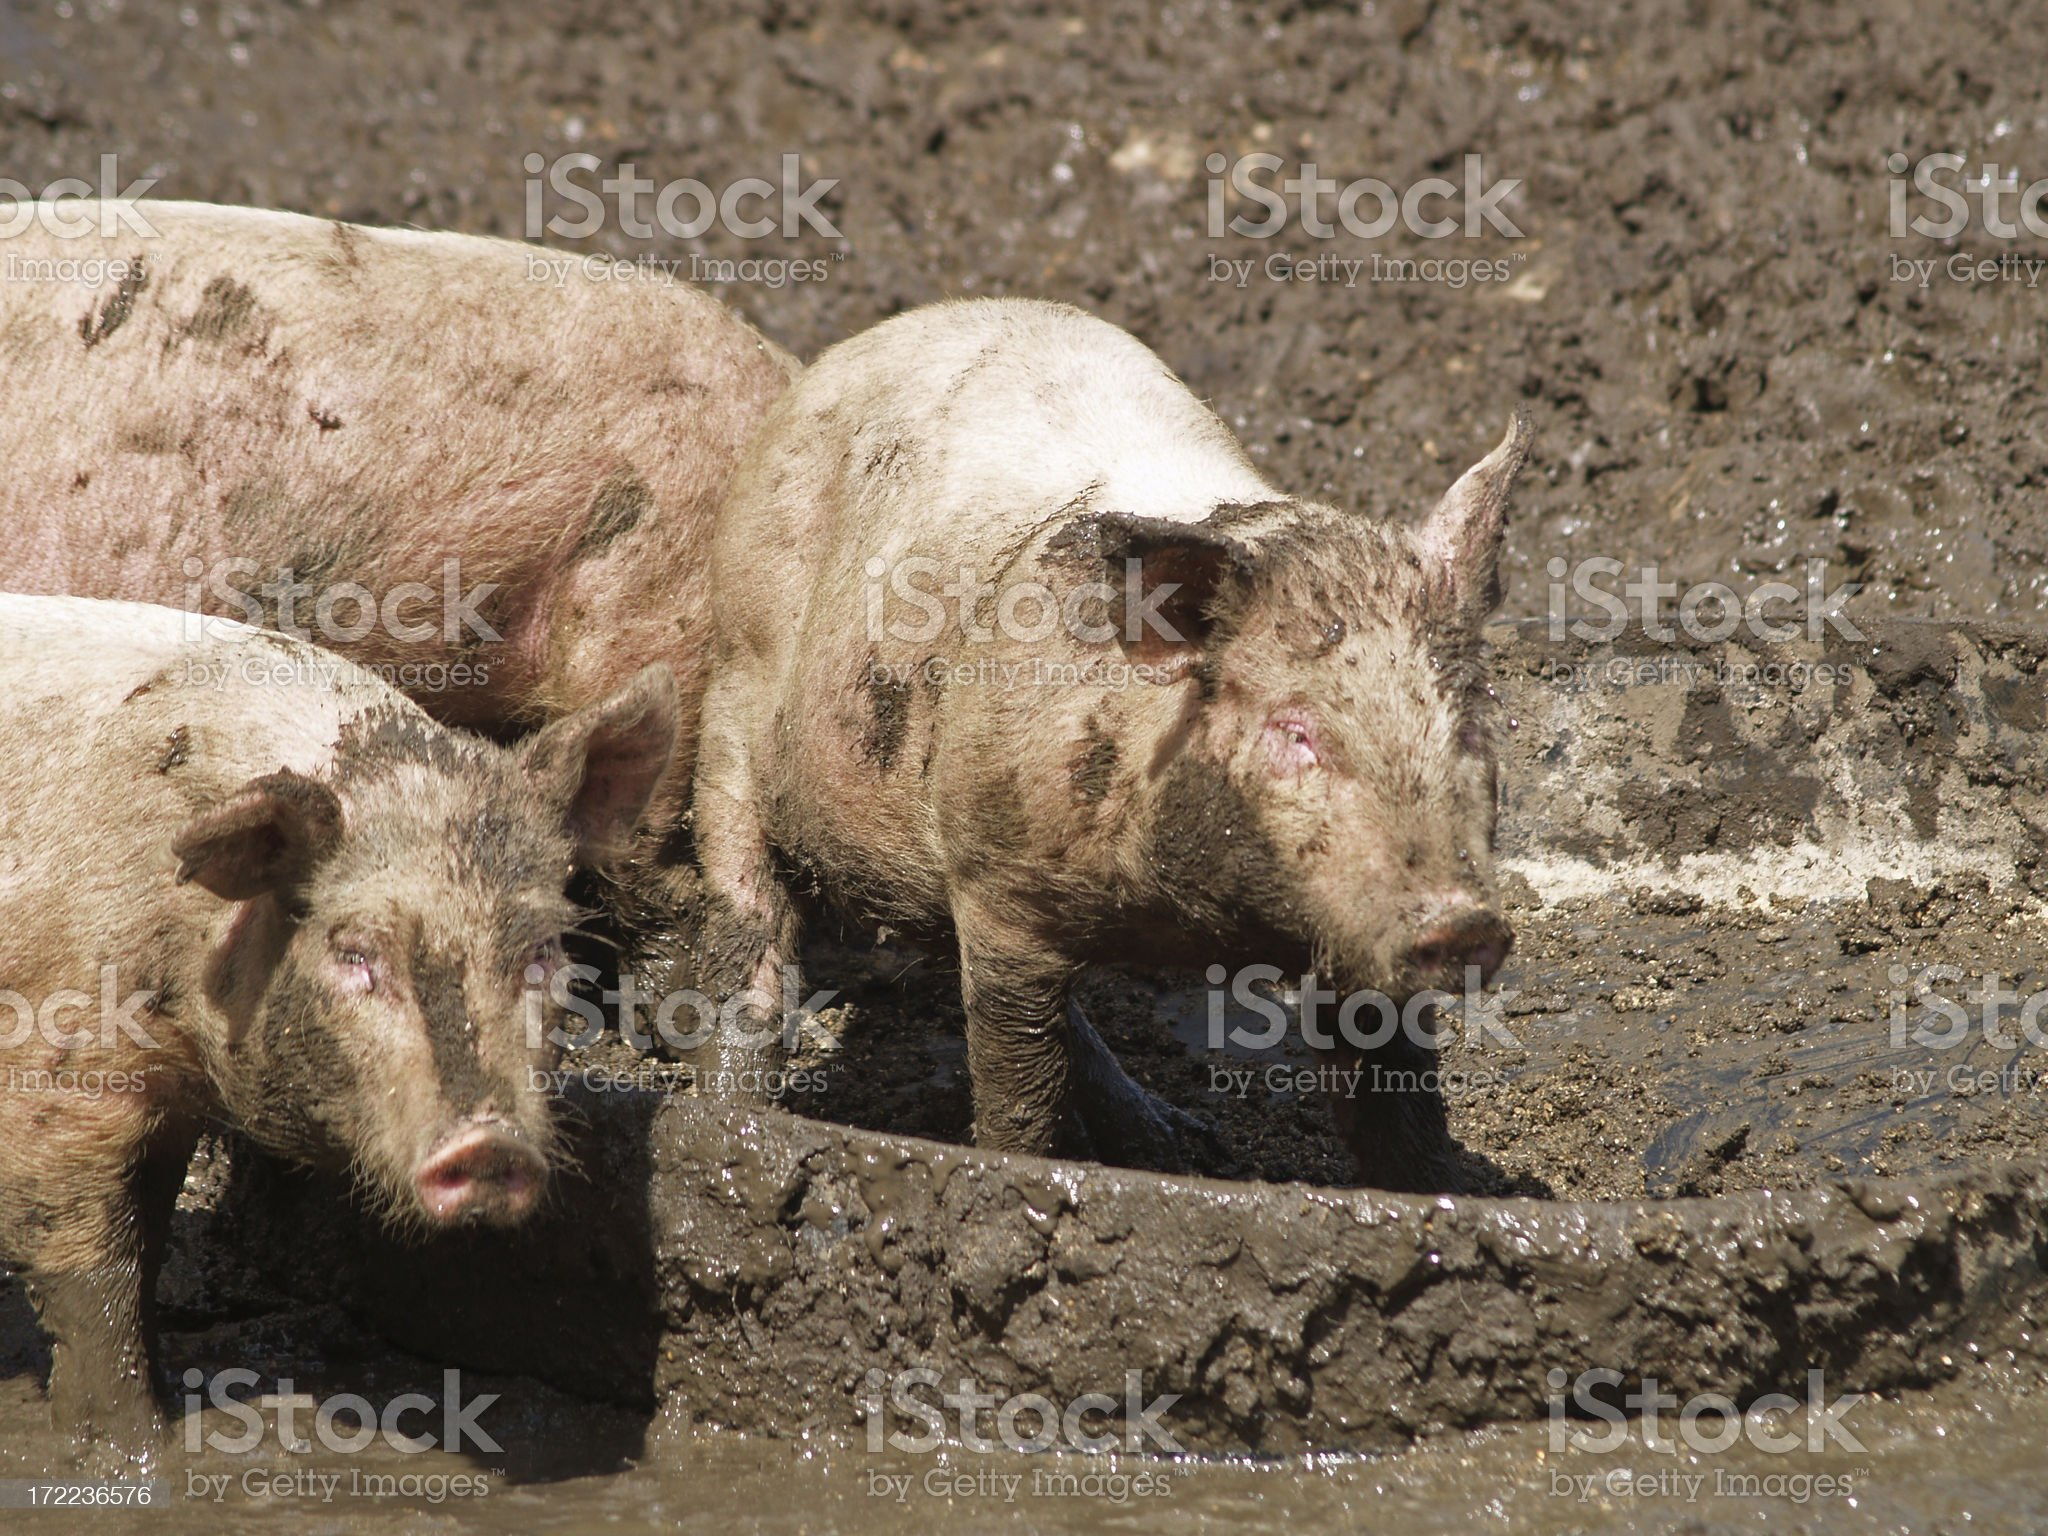 Pig in muck 2 royalty-free stock photo